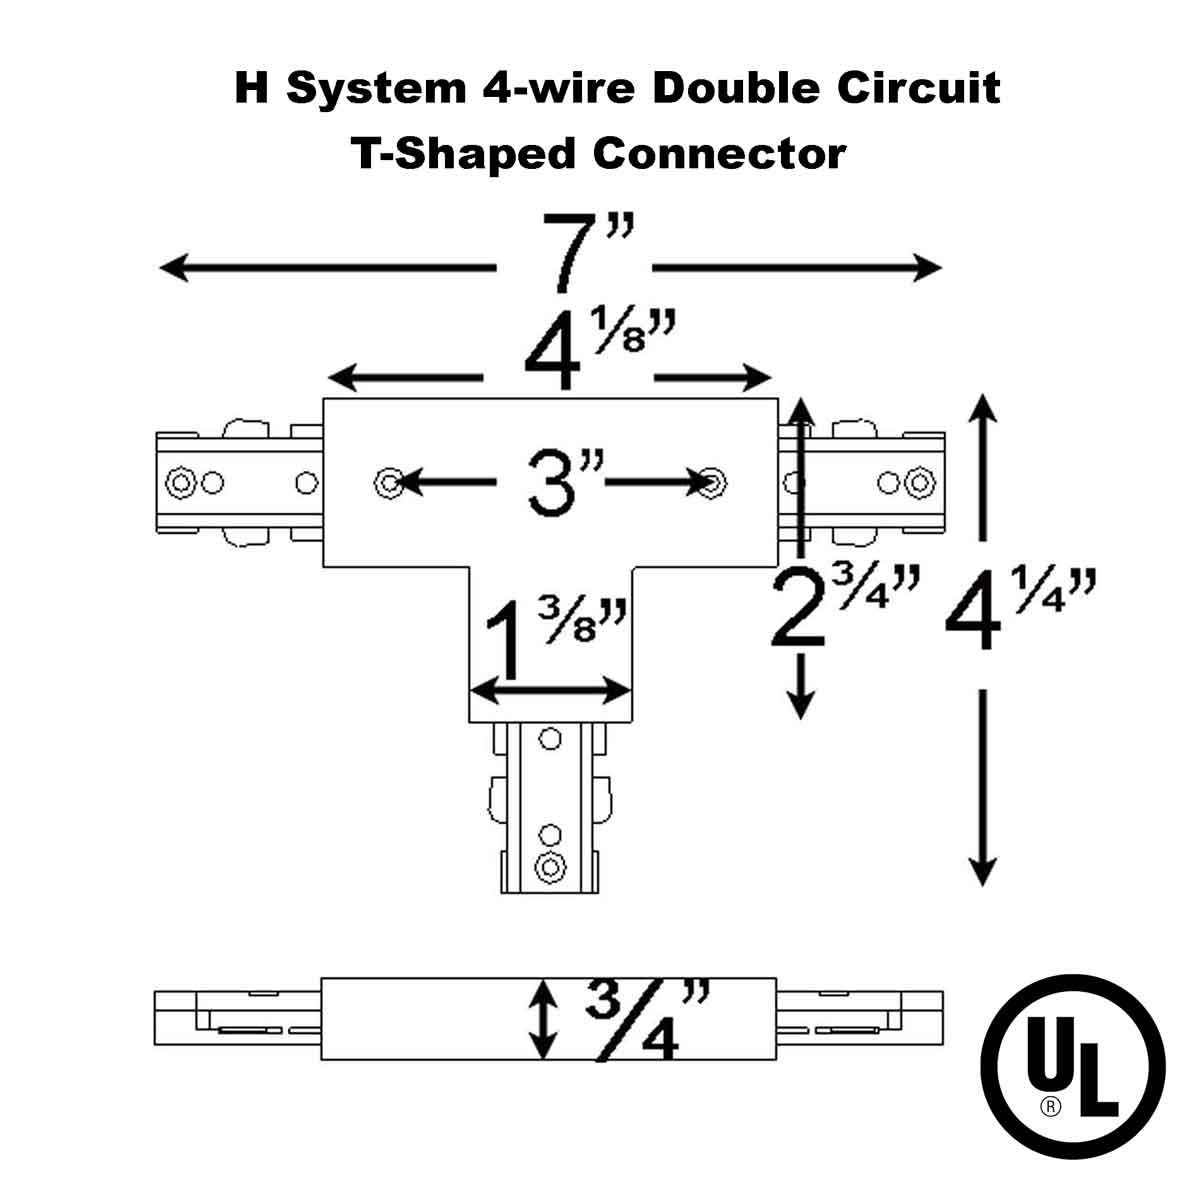 T connector with power entry for double circuit straight track